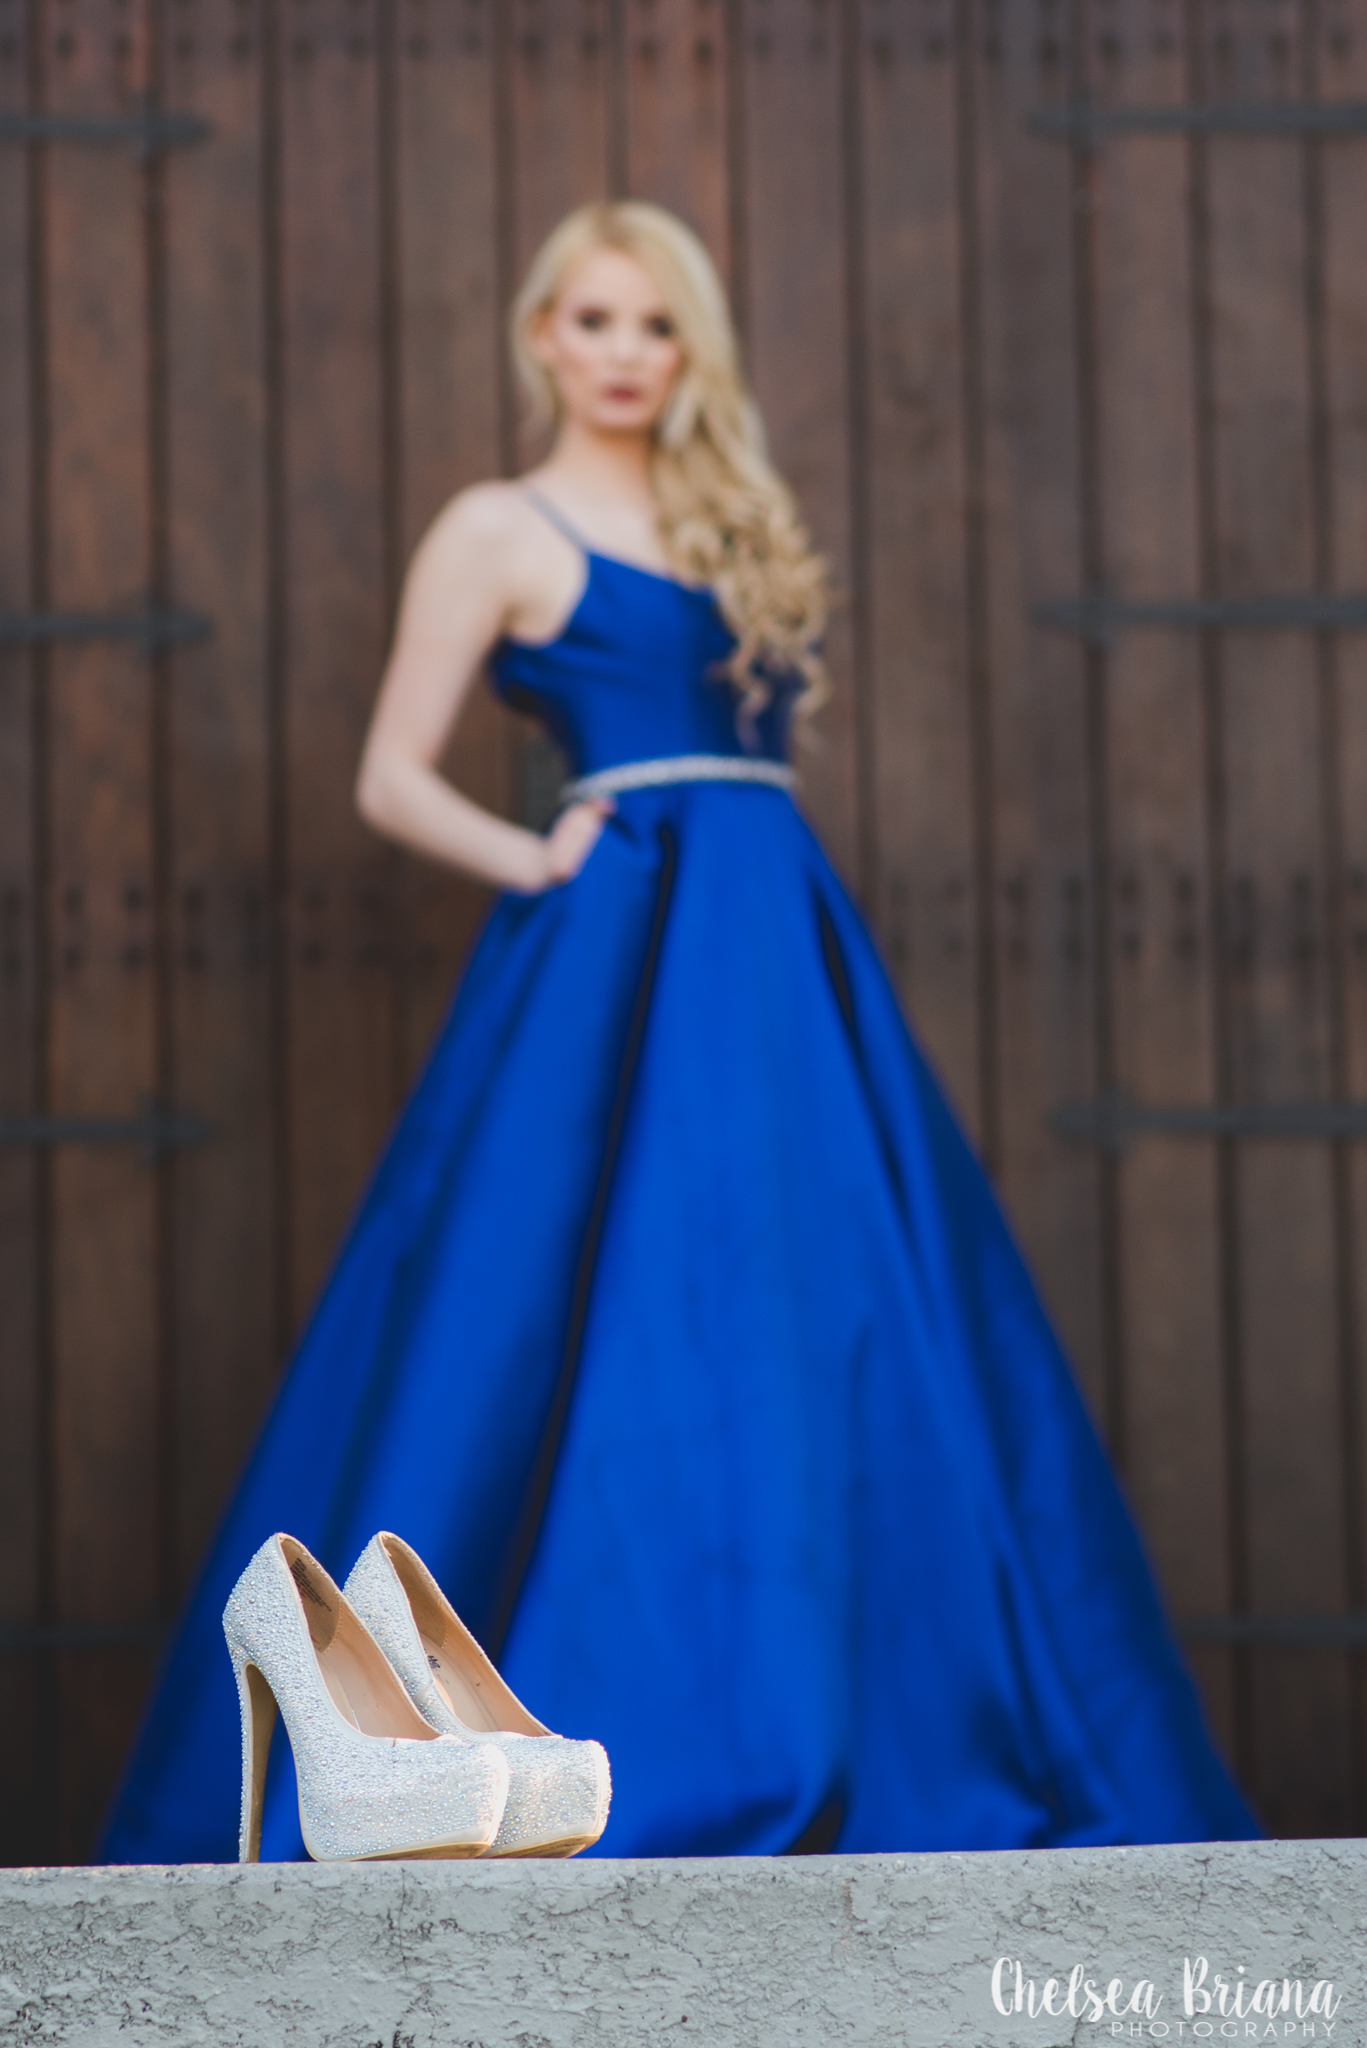 princess-heels-and-blue-gown